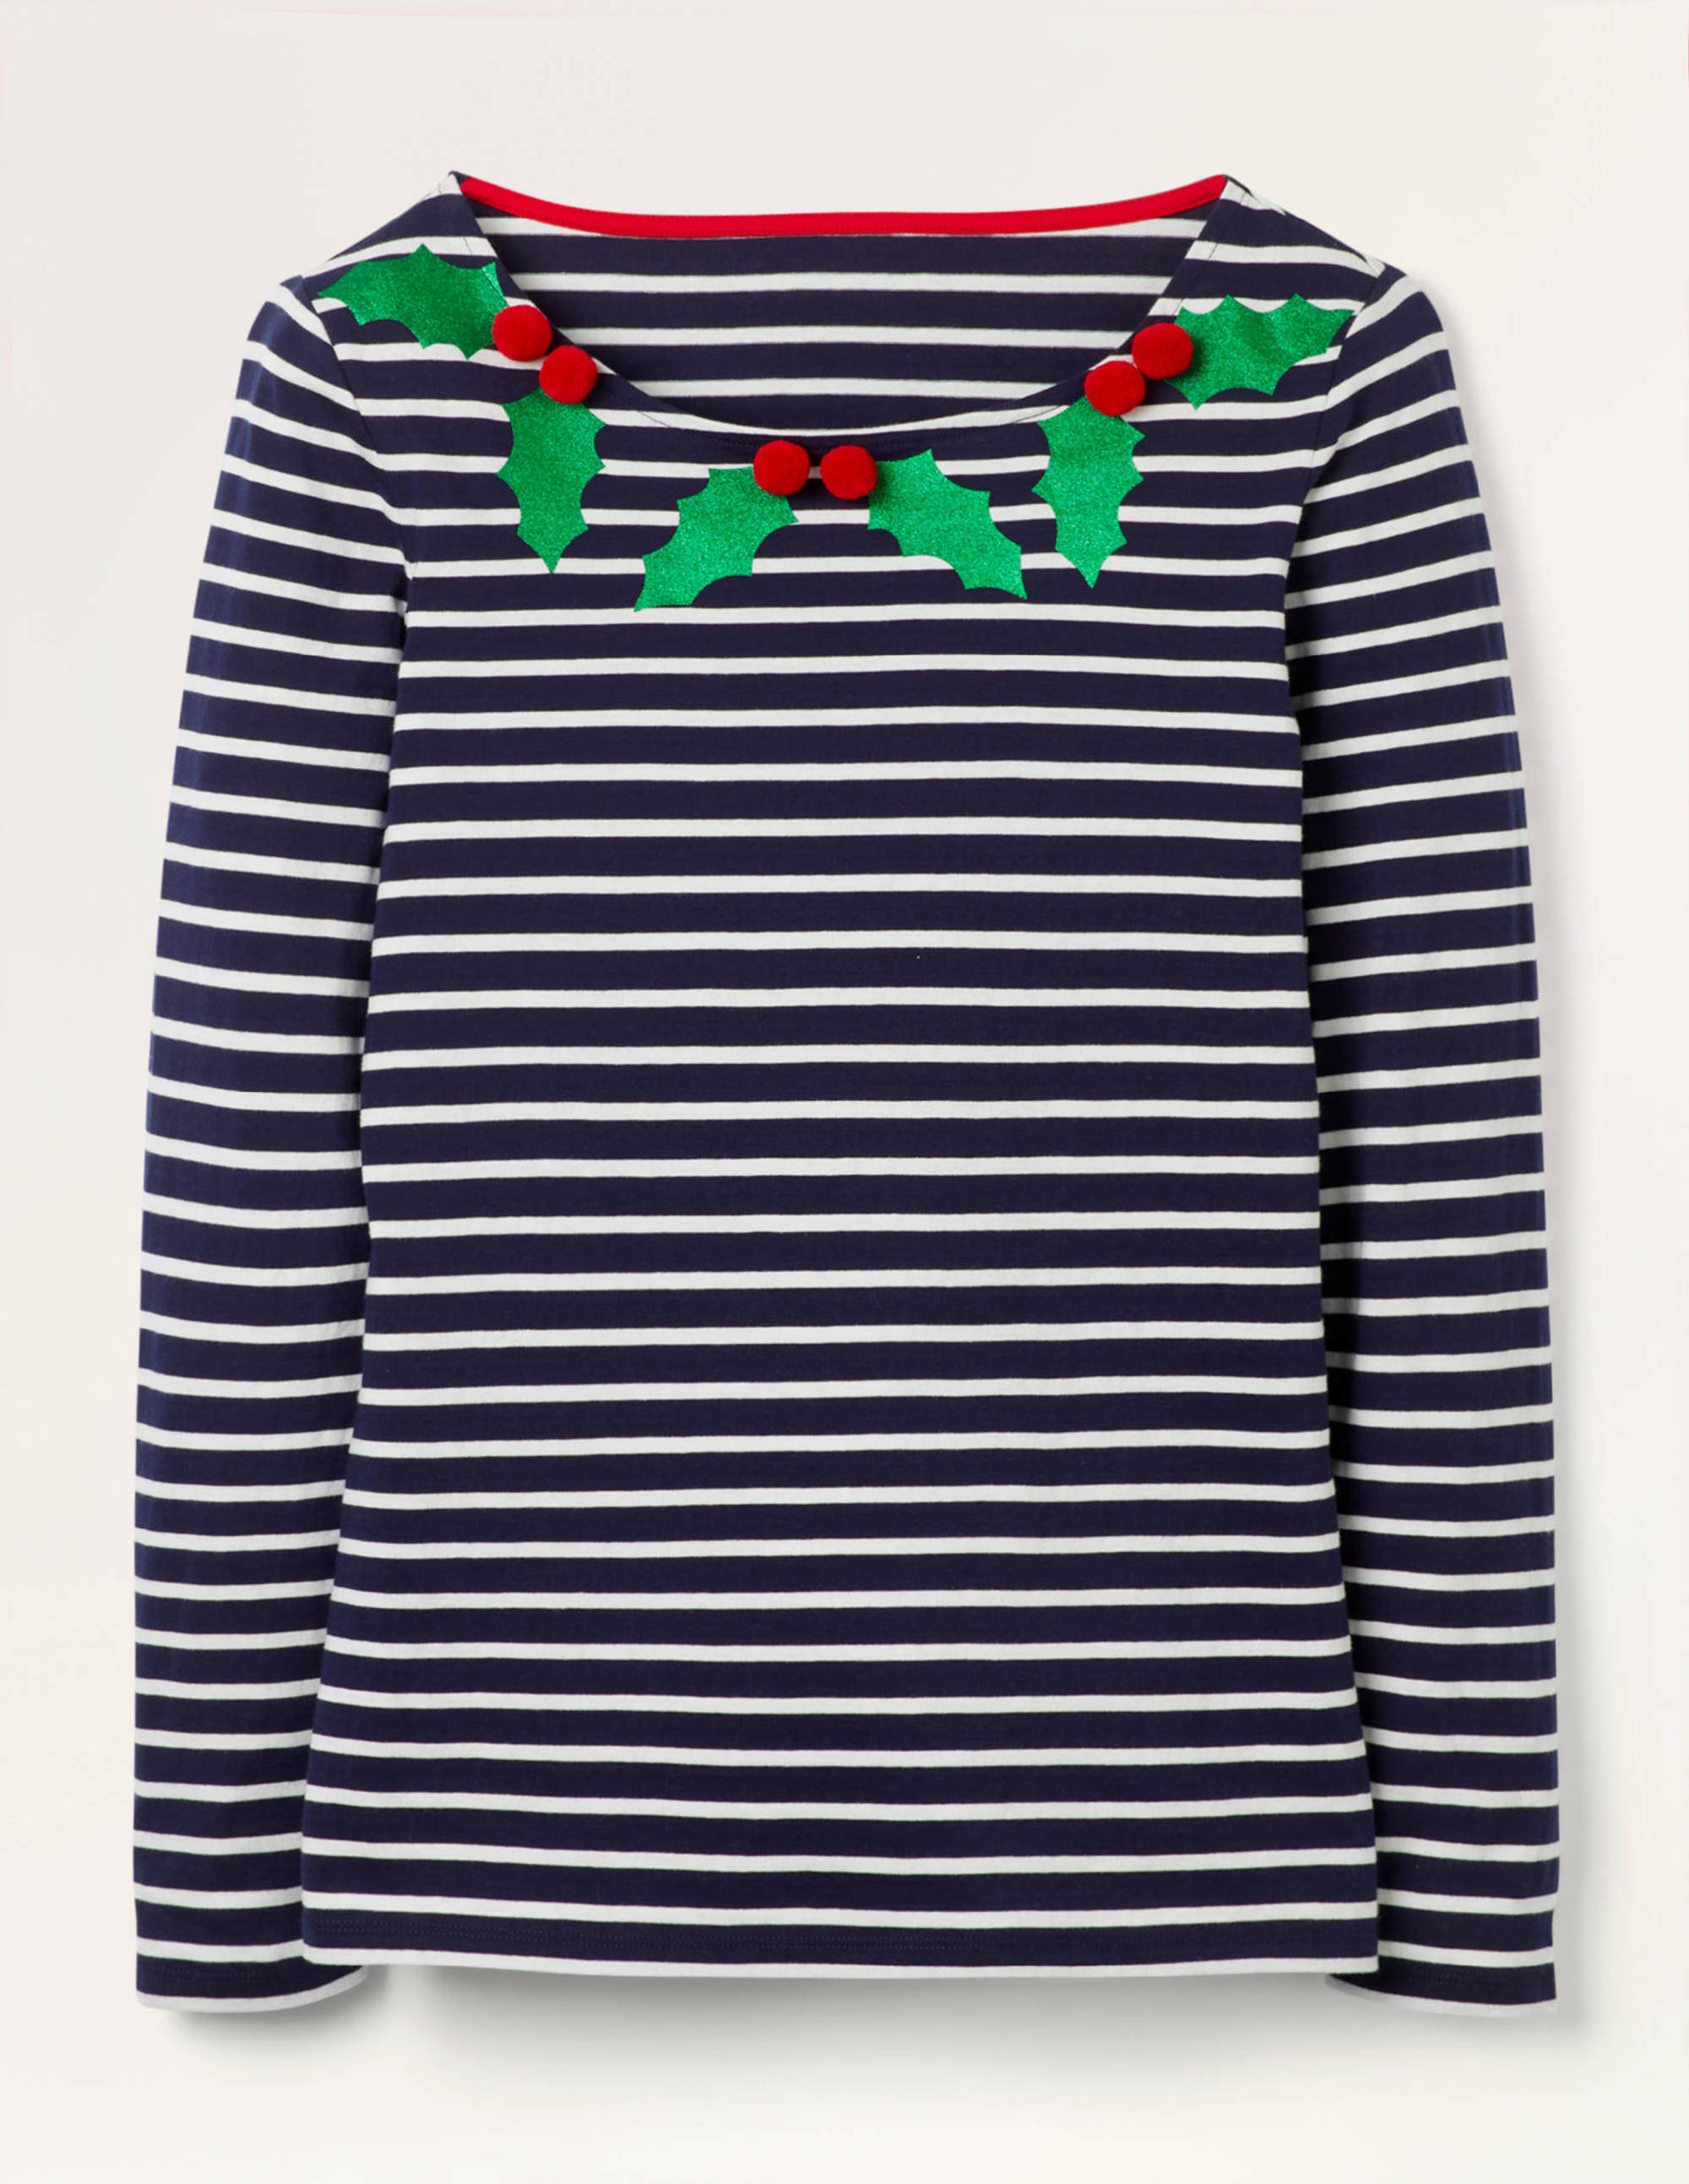 The Christmas Breton Shirt by Boden Clothing | Stay At Home Mum